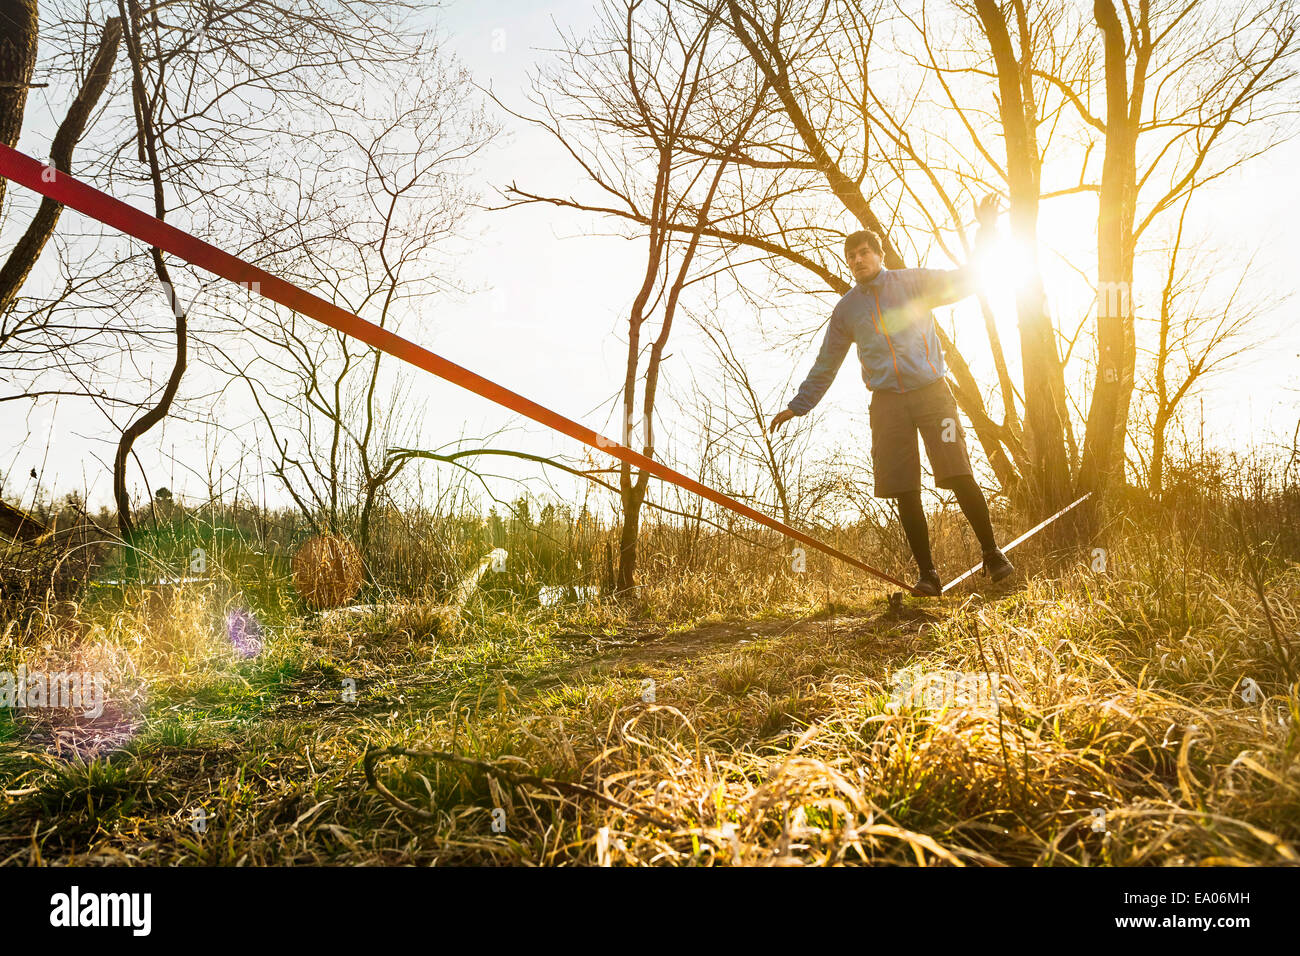 Young man balancing on one leg on slackline in field landscape - Stock Image